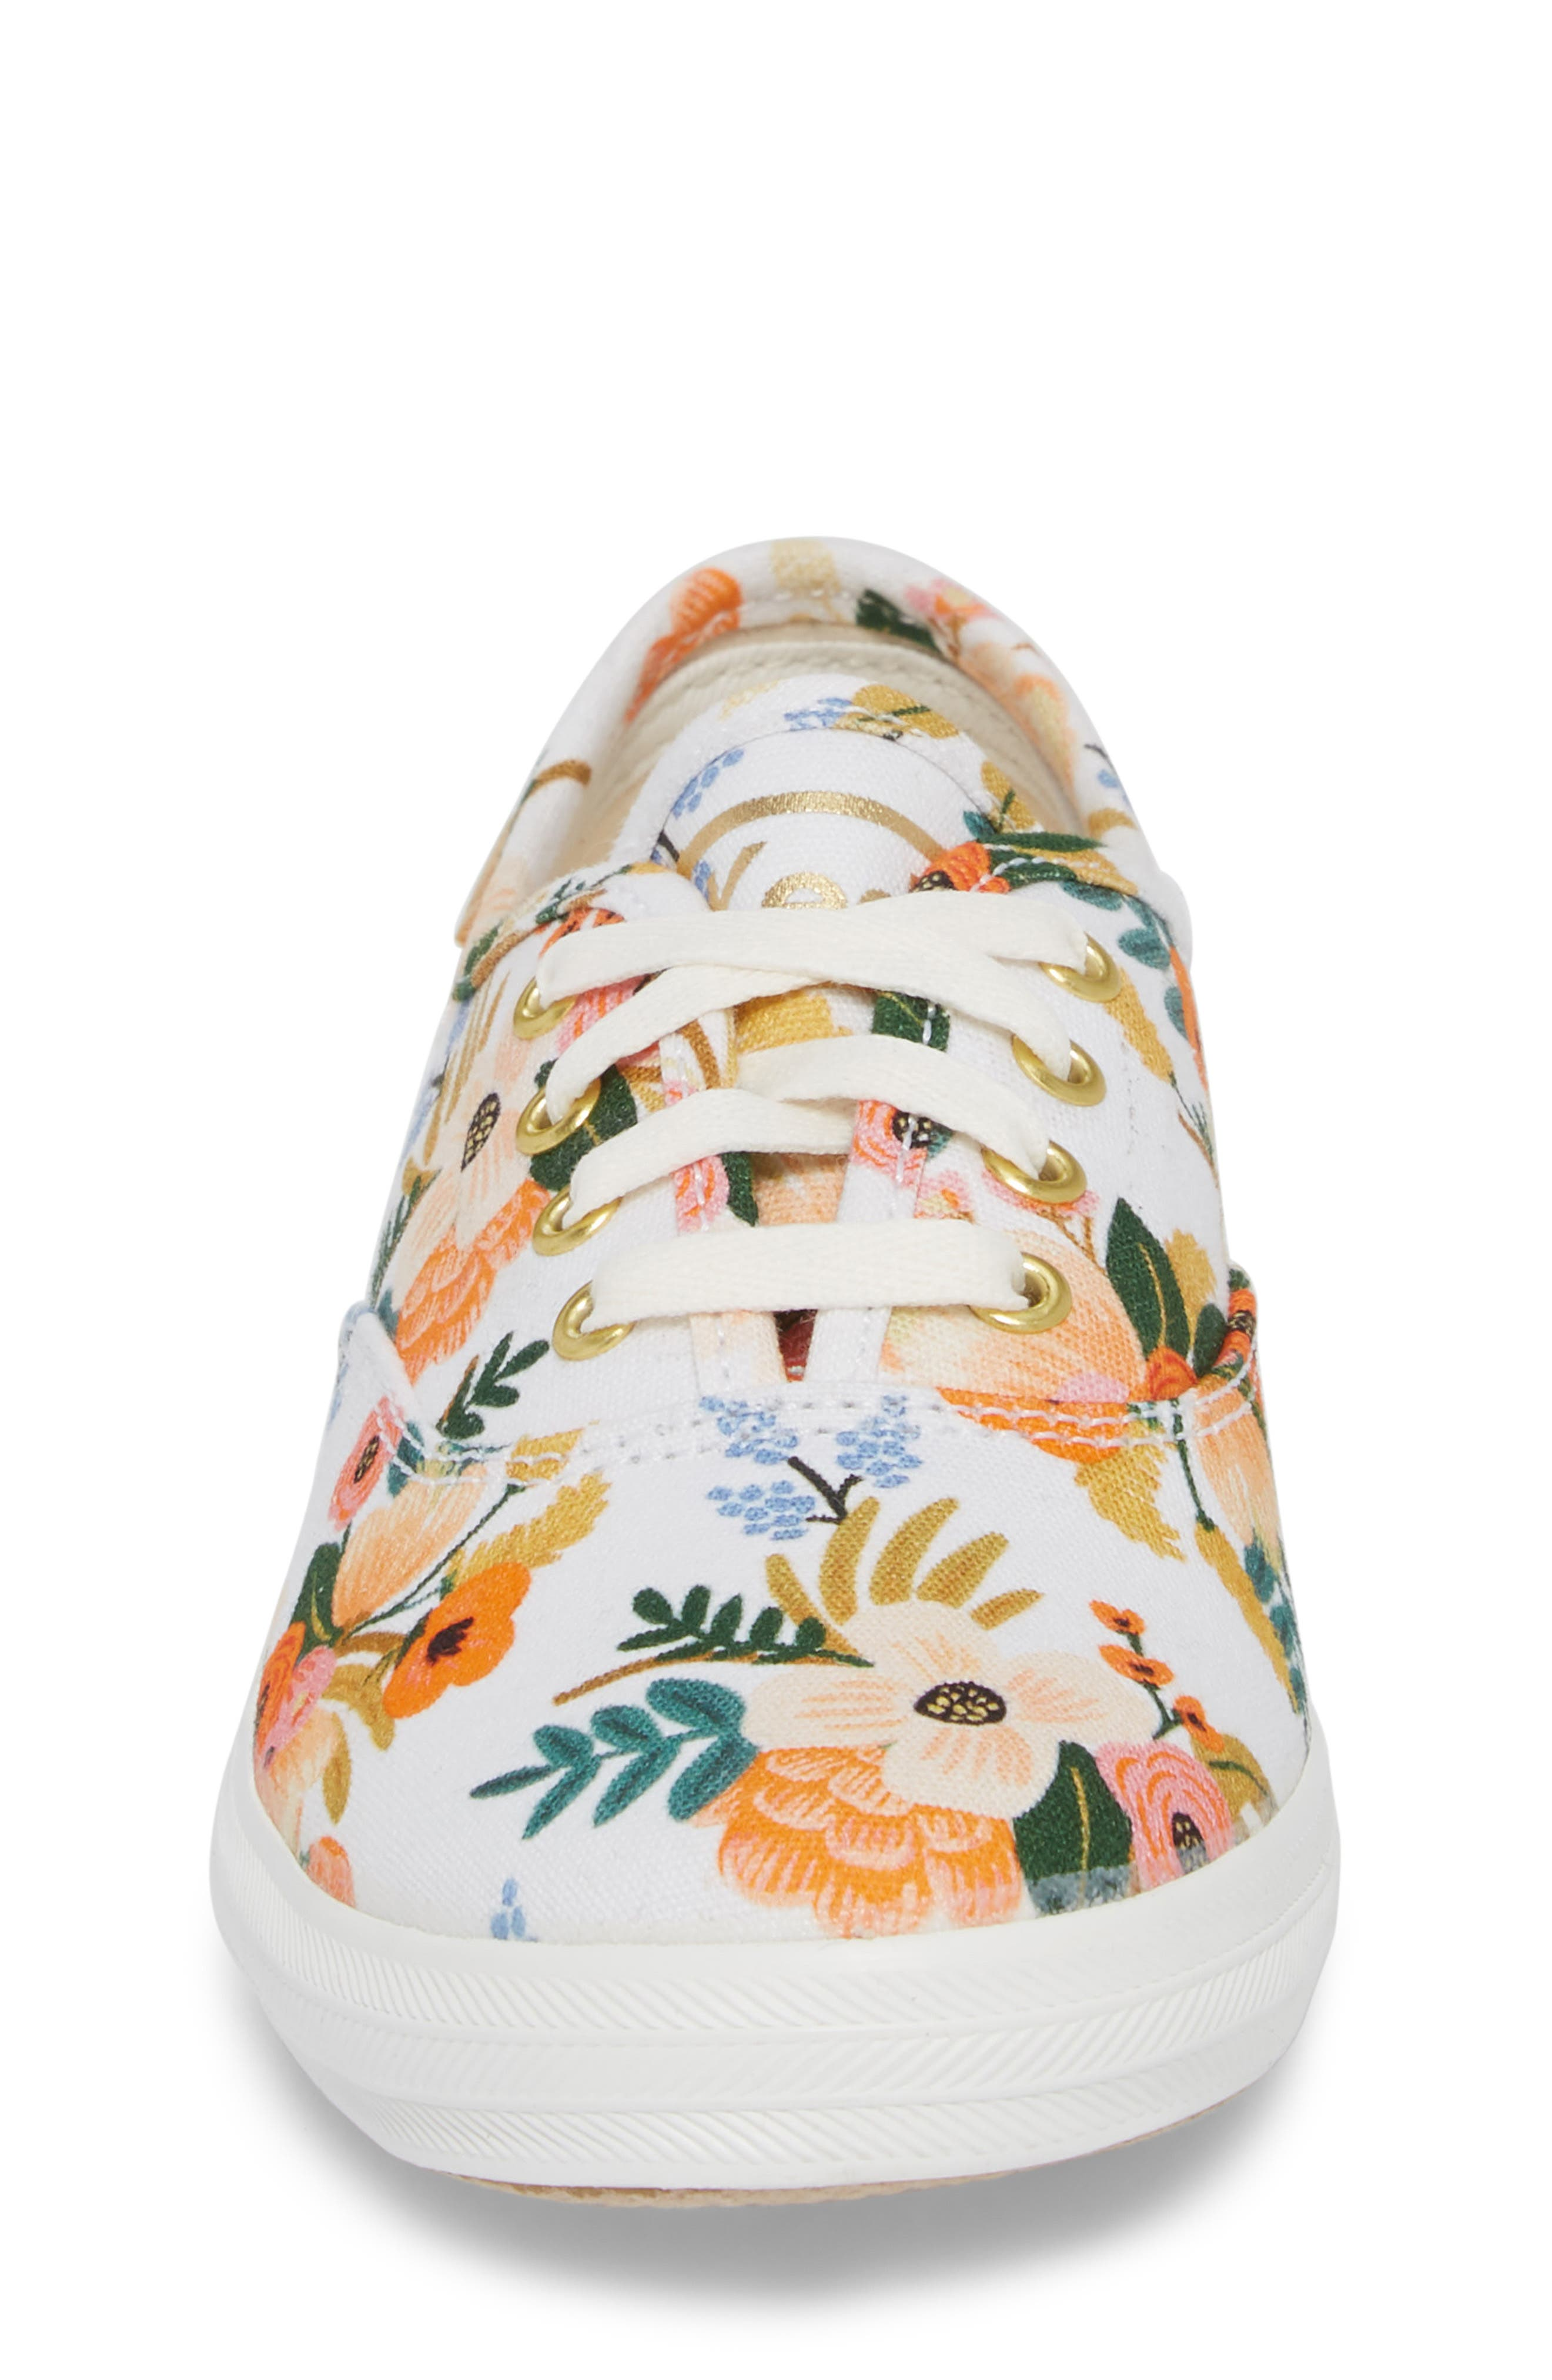 x Rifle Paper Co. Floral Print Champion Sneaker,                             Alternate thumbnail 4, color,                             Lively White